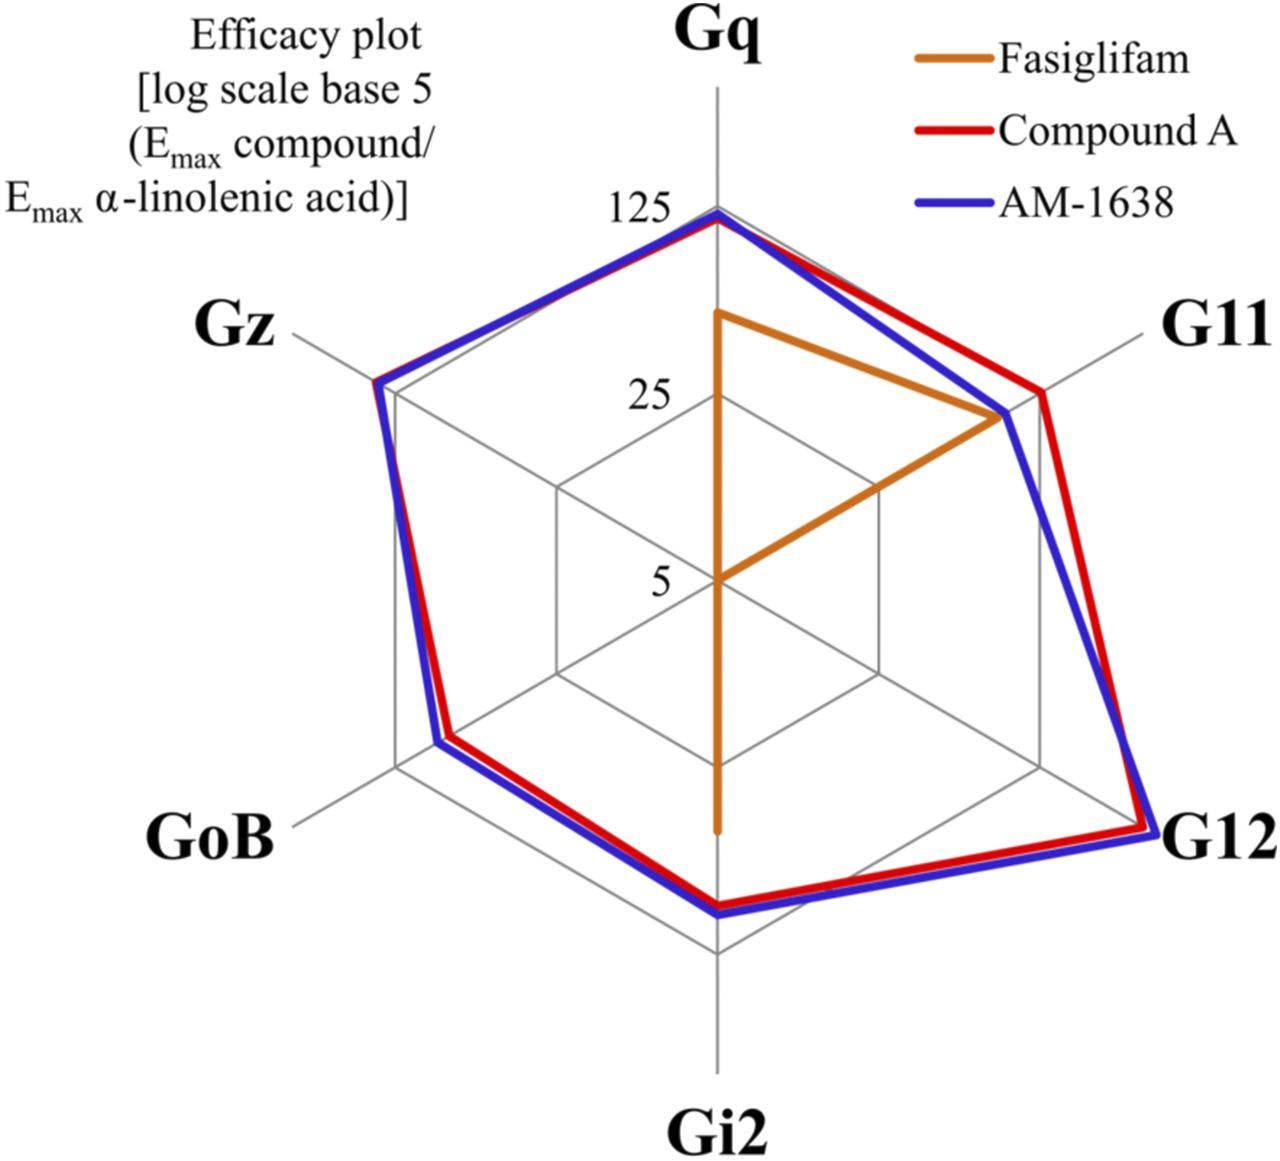 Gpr40 Mediated G12 Activation By Allosteric Full Agonists Highly Eagle Diagram Group Picture Image Tag Keywordpicturescom Download Figure